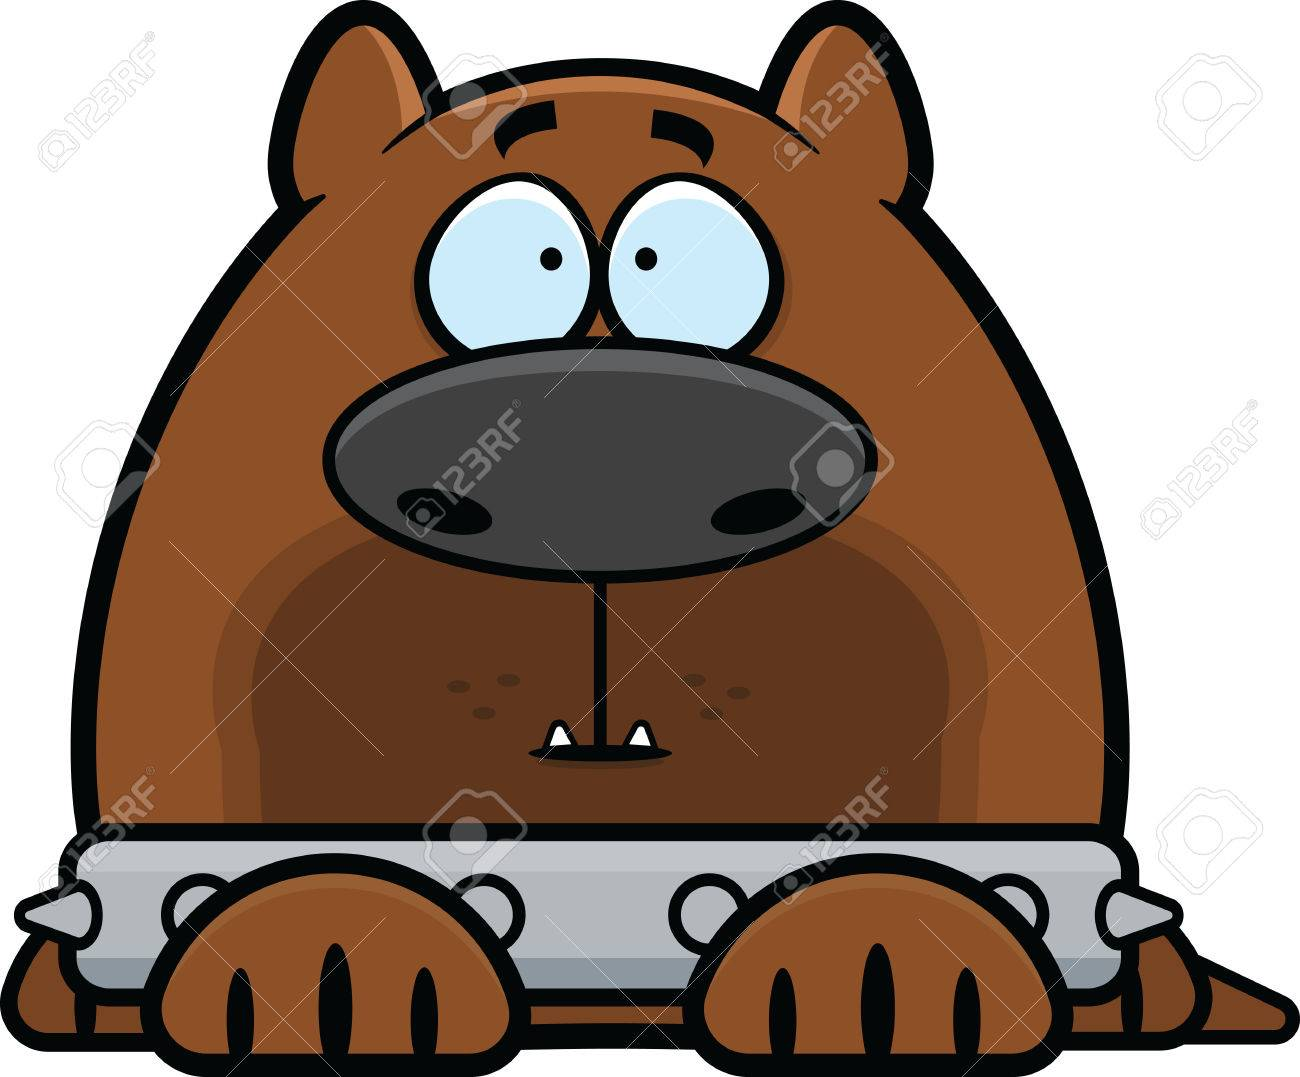 1300x1077 Cartoon Illustration Of A Guard Dog With A Spiked Collar